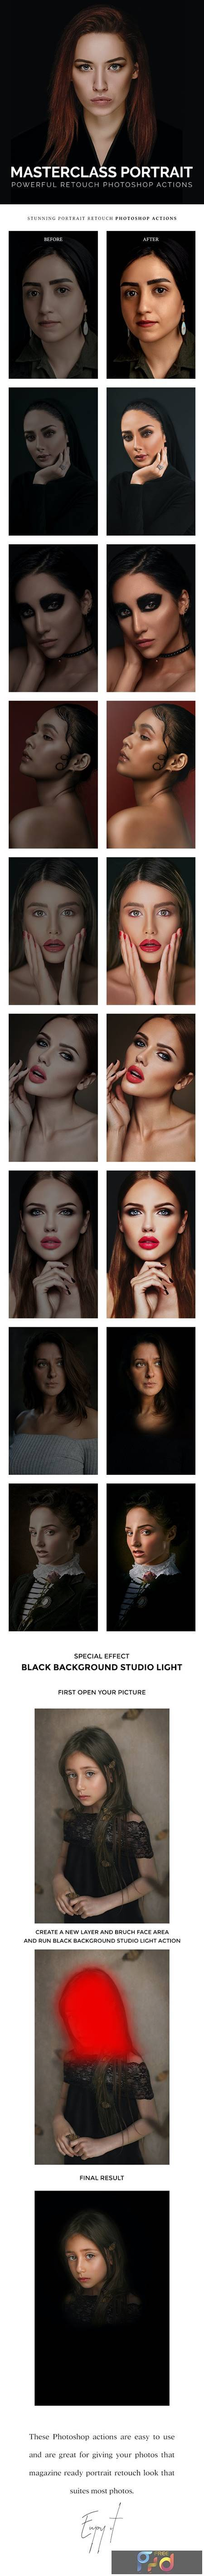 Masterclass Portrait Photoshop Actions 28940112 1